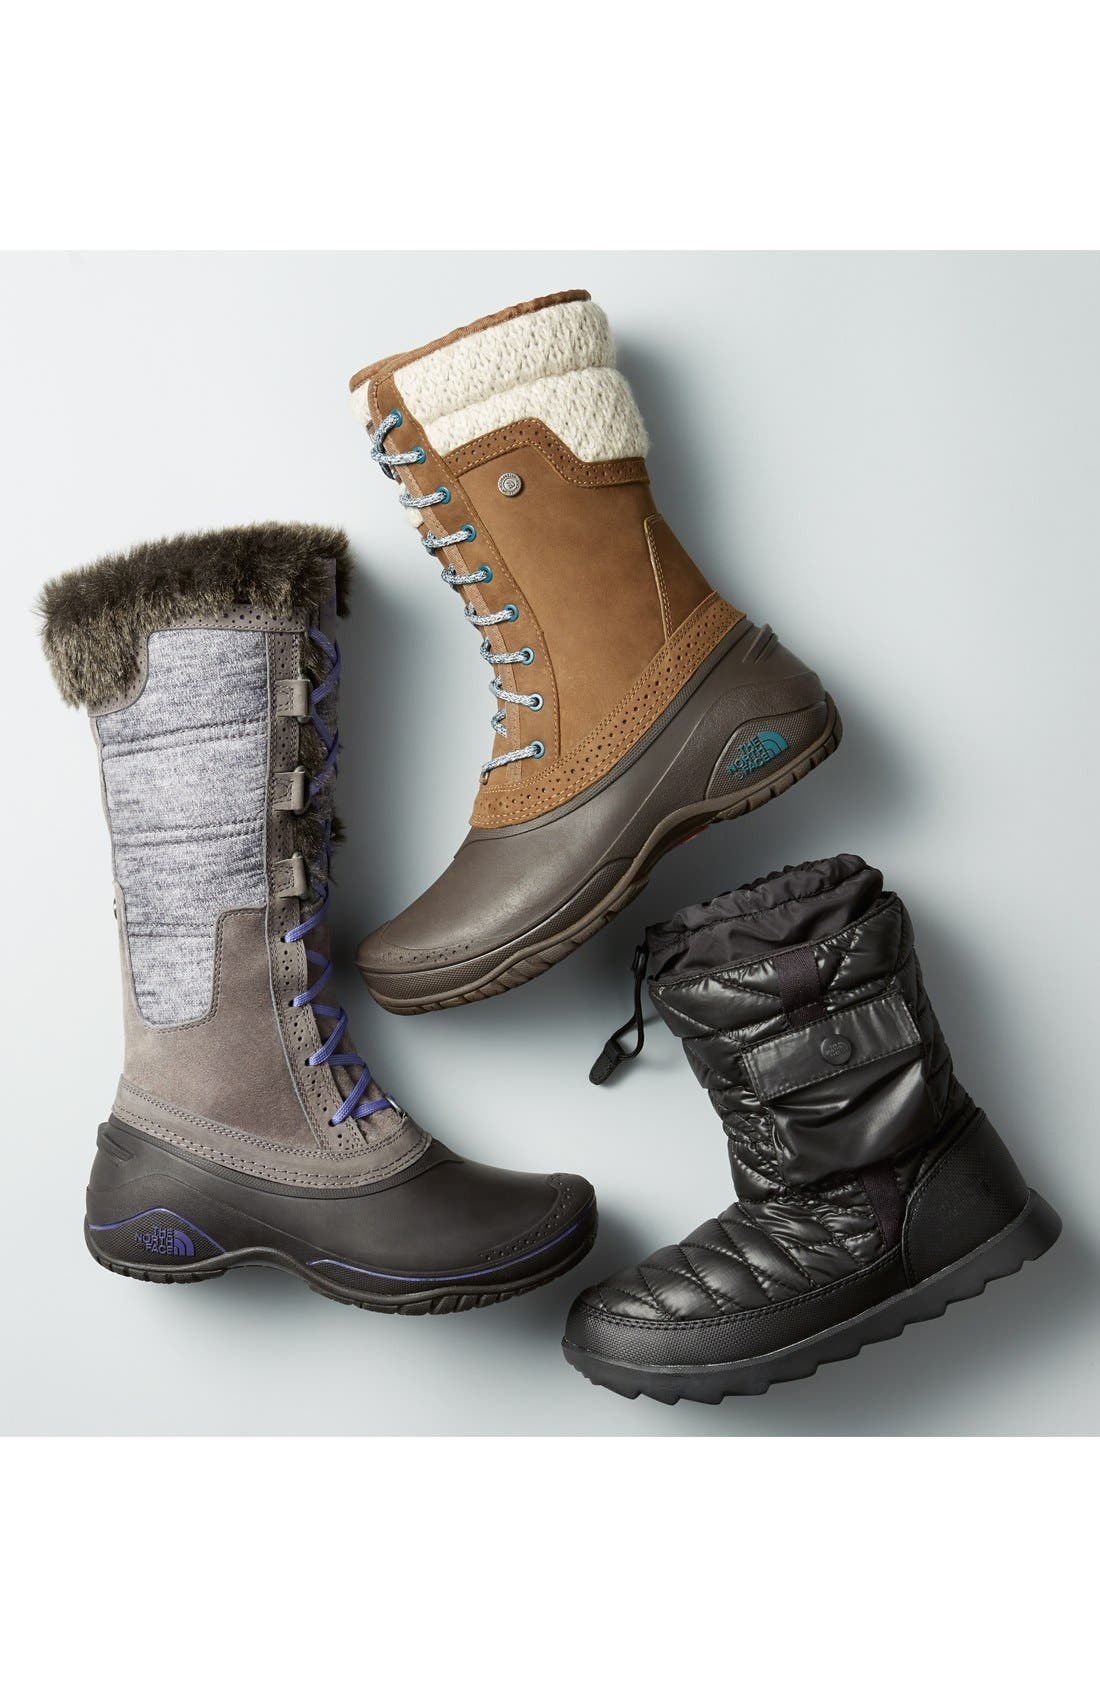 THE NORTH FACE,                             Shellista Waterproof Insulated Snow Boot,                             Alternate thumbnail 7, color,                             003